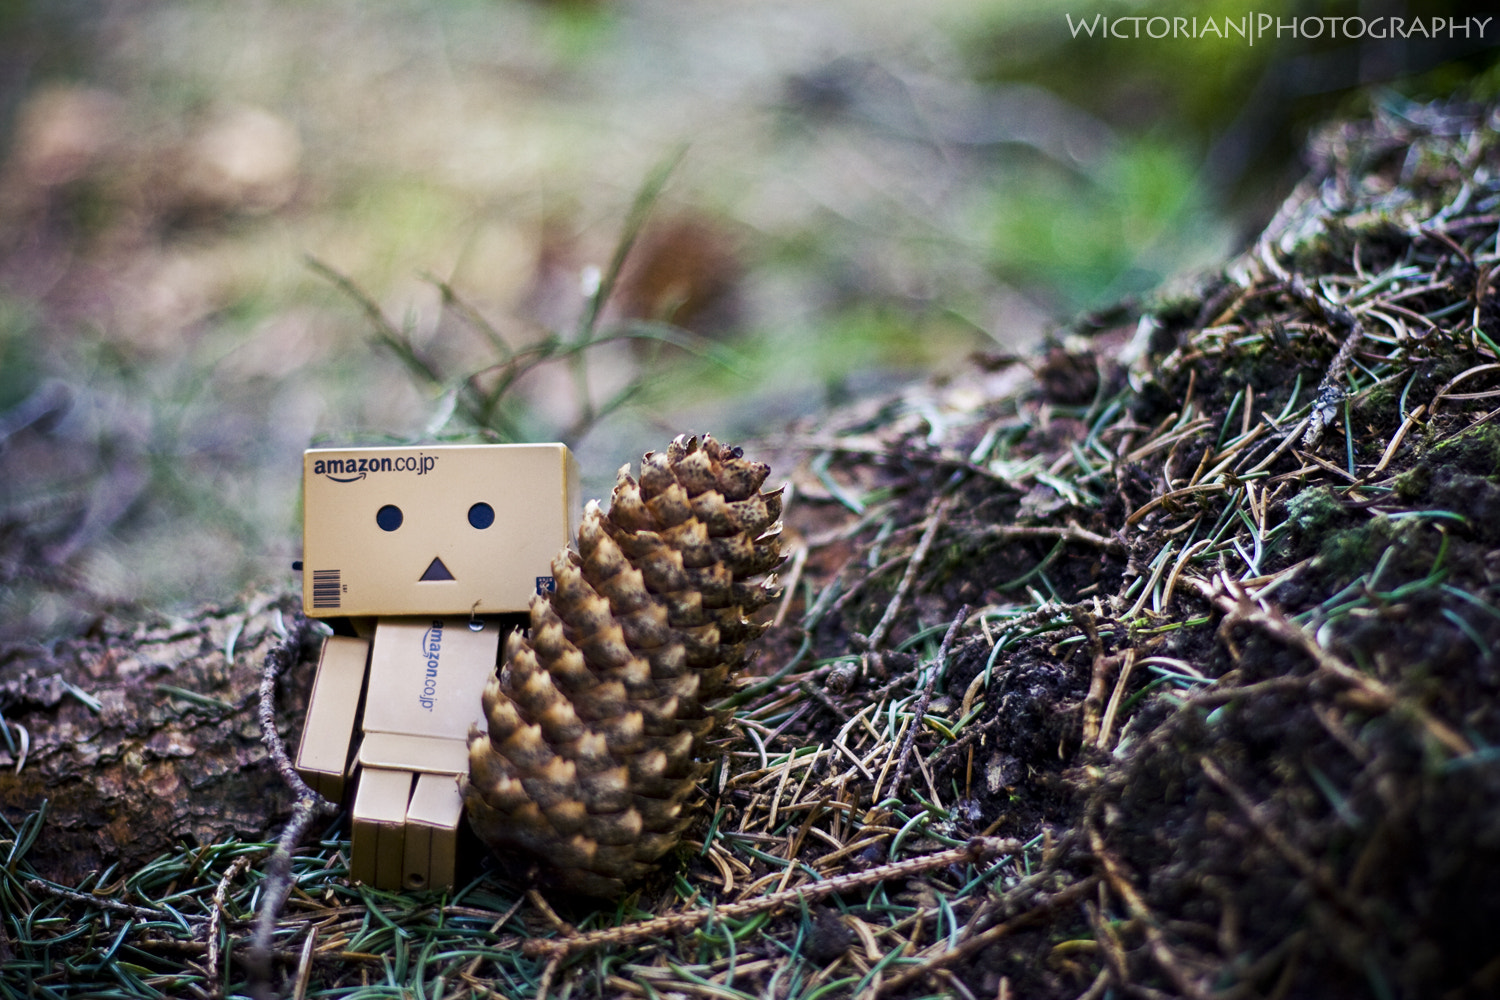 Photograph Danbo-san by Wictoria Nordgaard on 500px